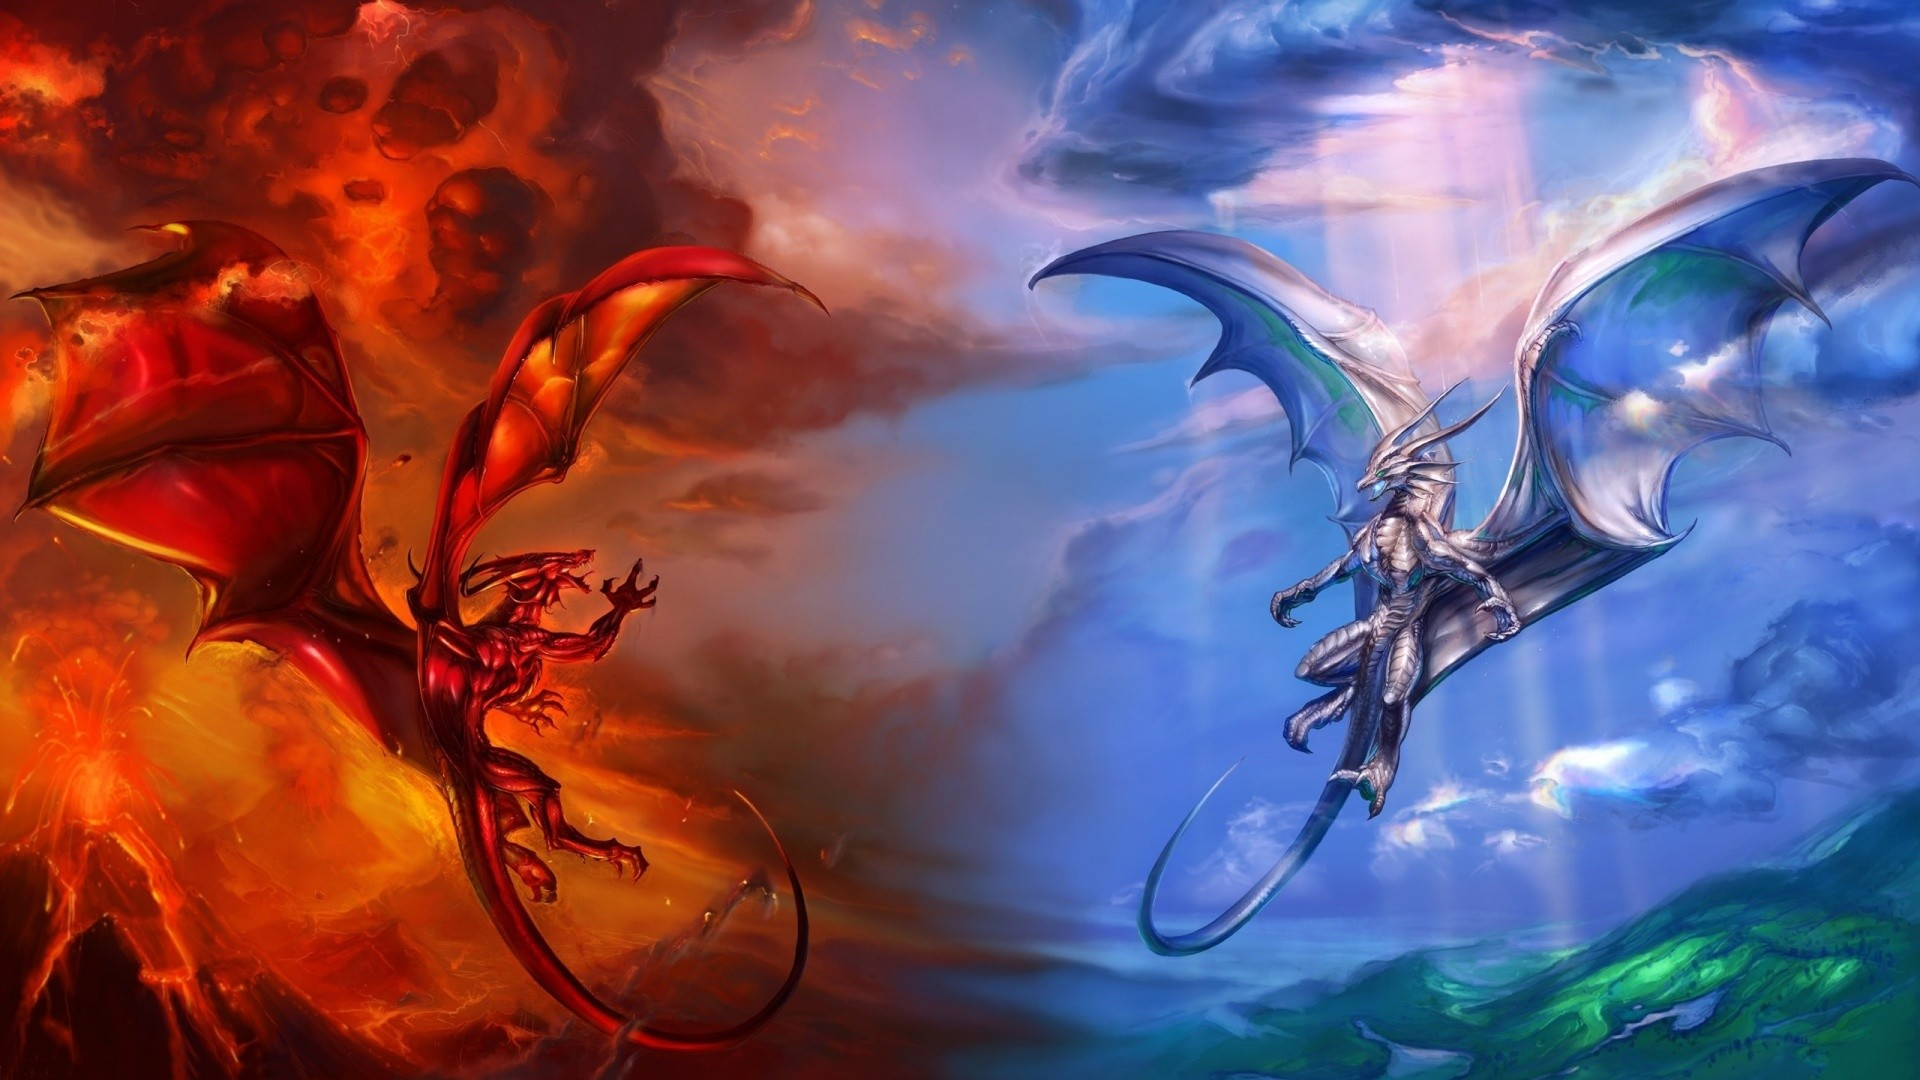 Helicopters vs dragons fantasy hd wallpaper 1920×1080. heaven and hell dragons  1920×1080.